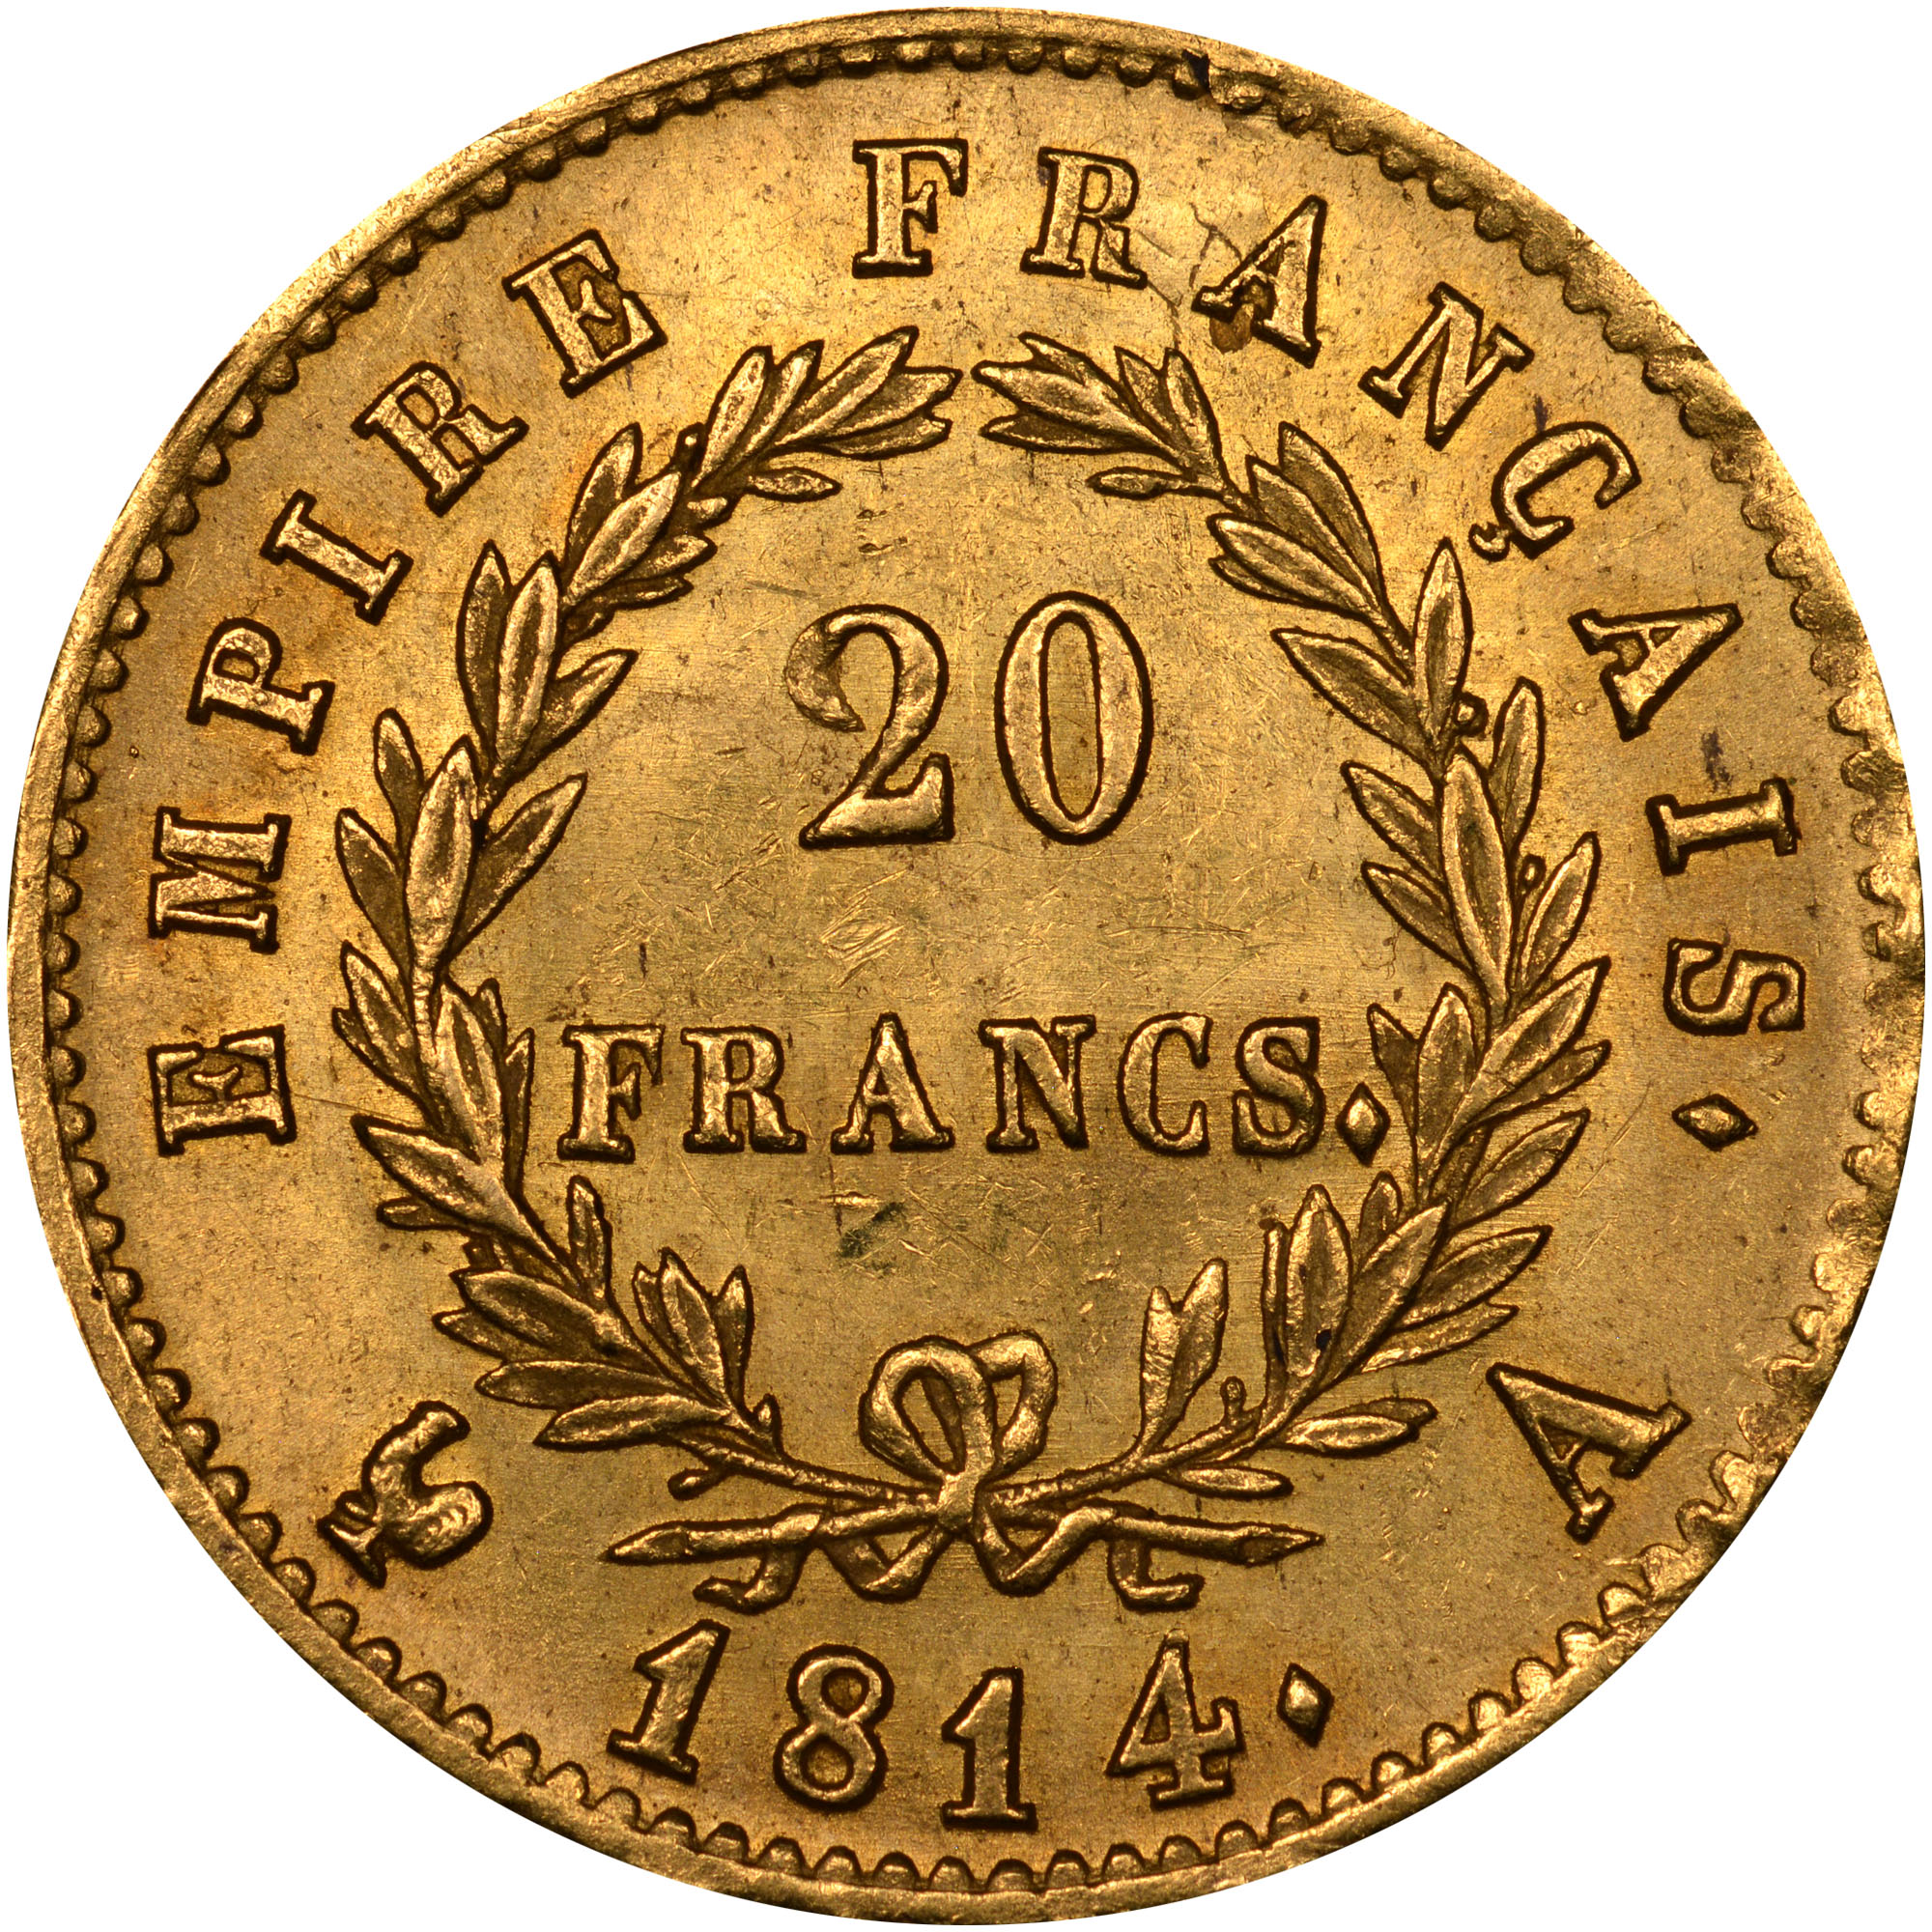 France 20 francs km 695 1 prices values ngc for France francs